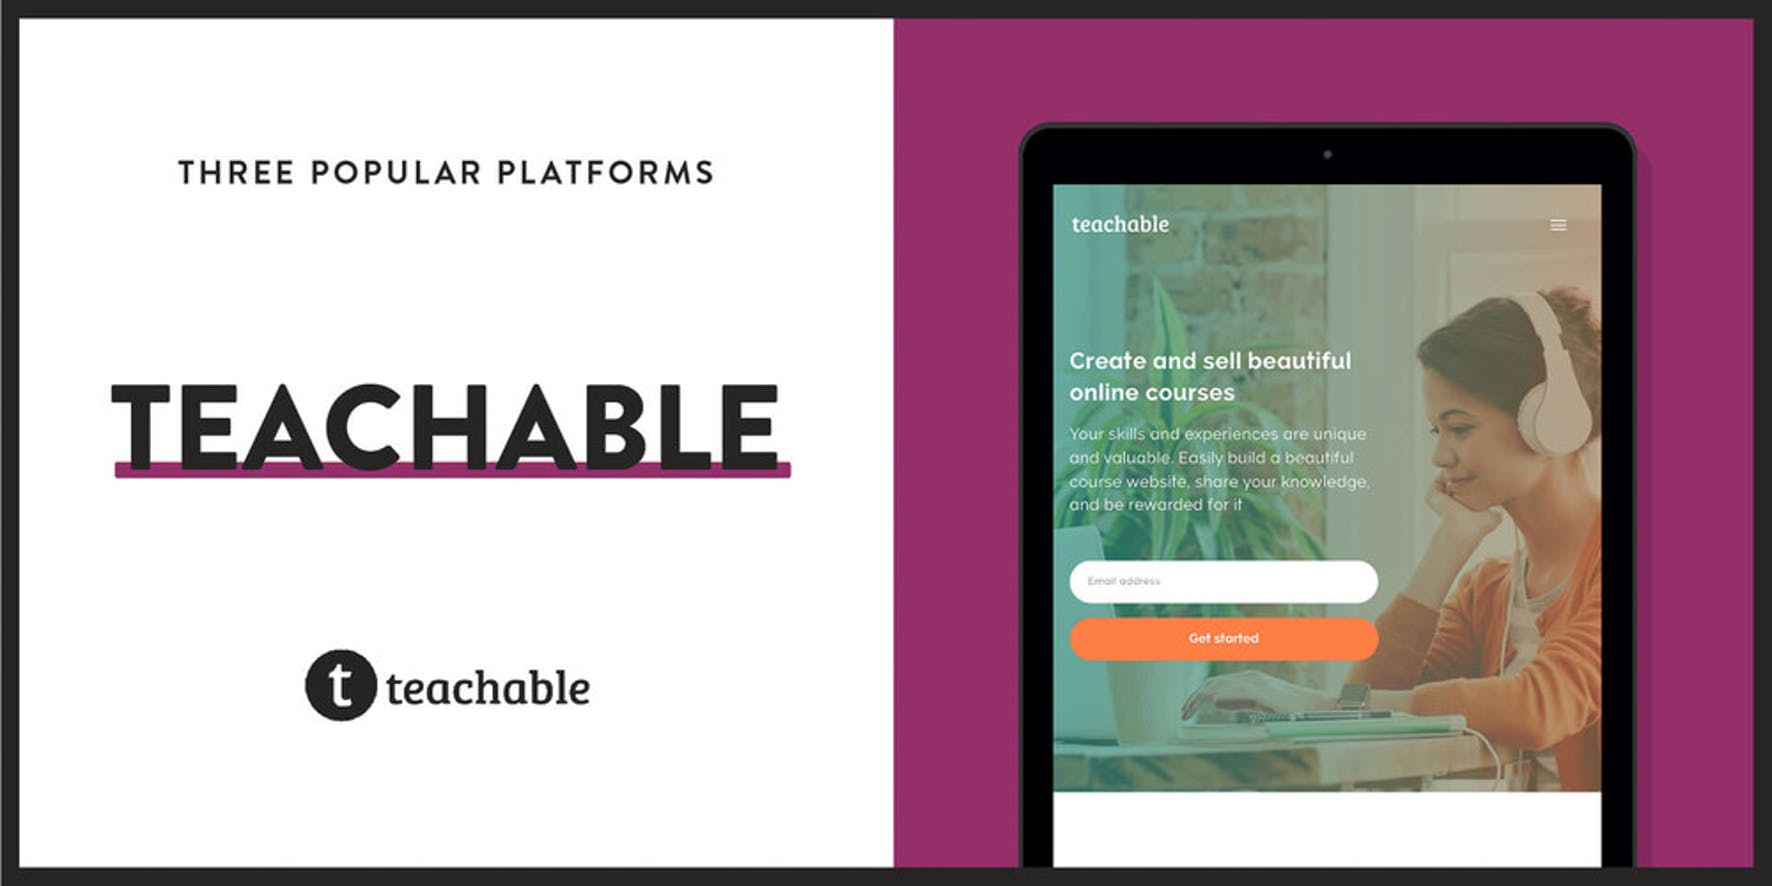 Teachable is a popular platform to sell courses online